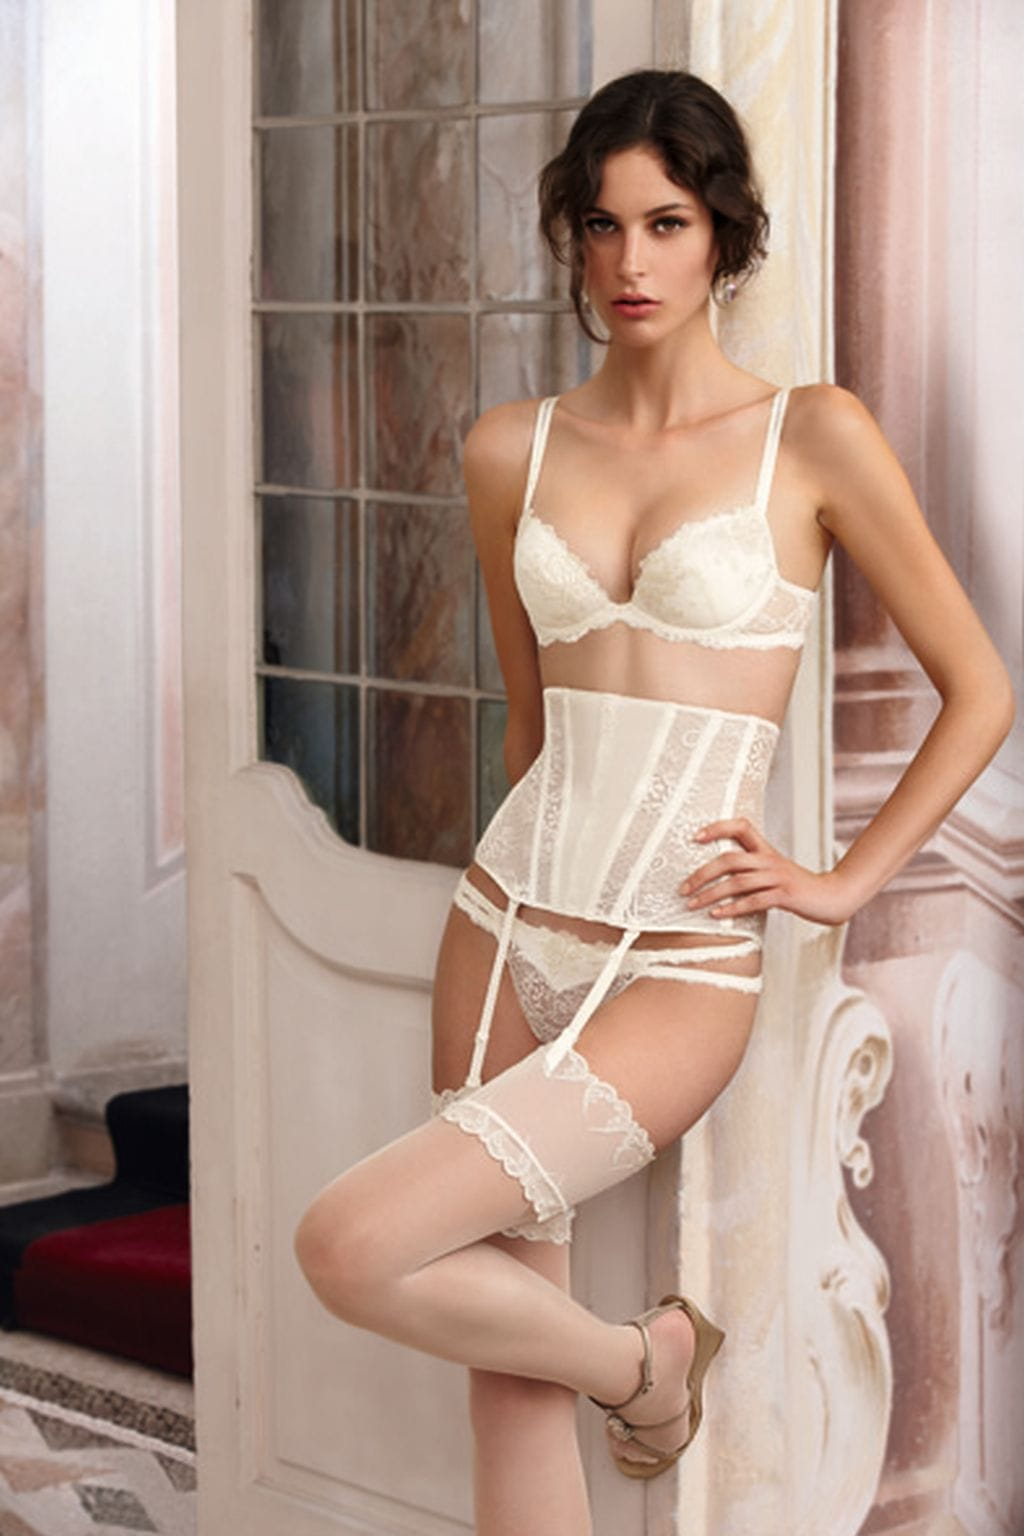 Choosing Bridal Lingerie